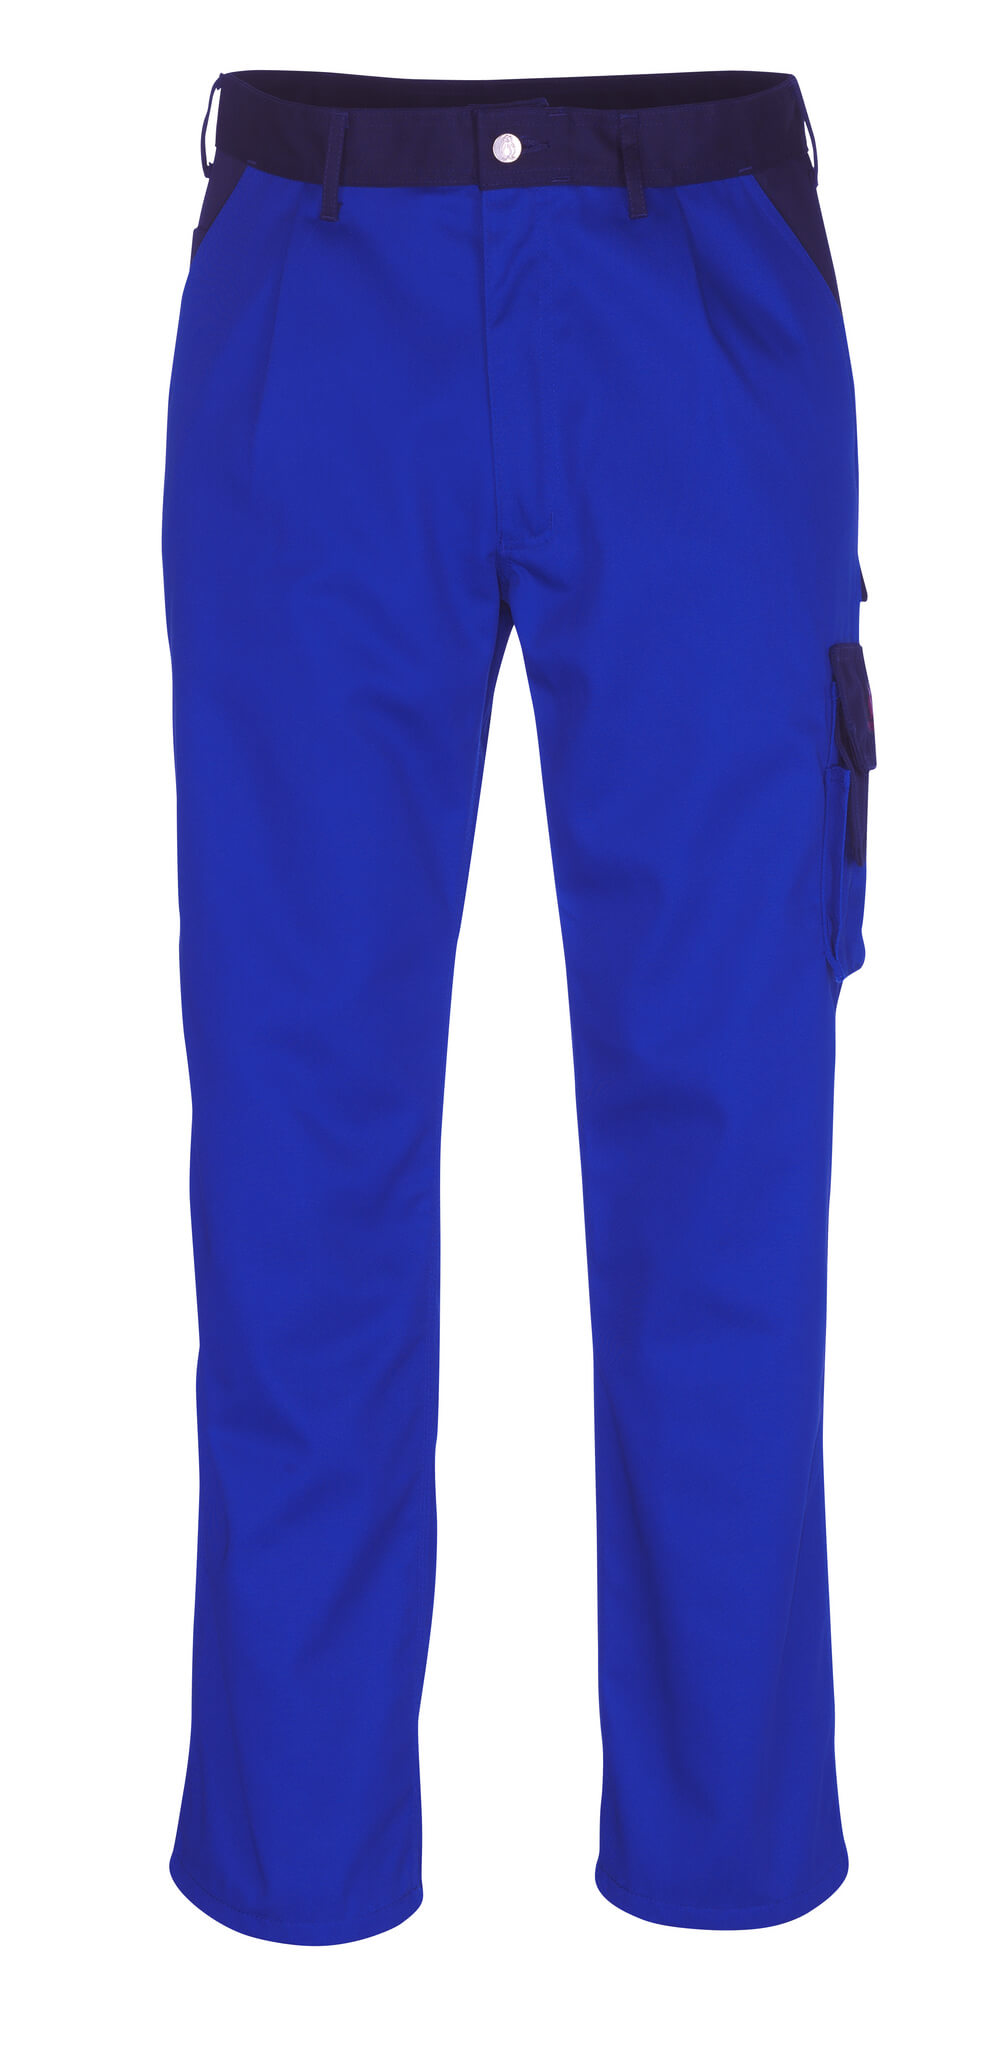 06279-430-1101 Trousers with thigh pockets - royal/navy